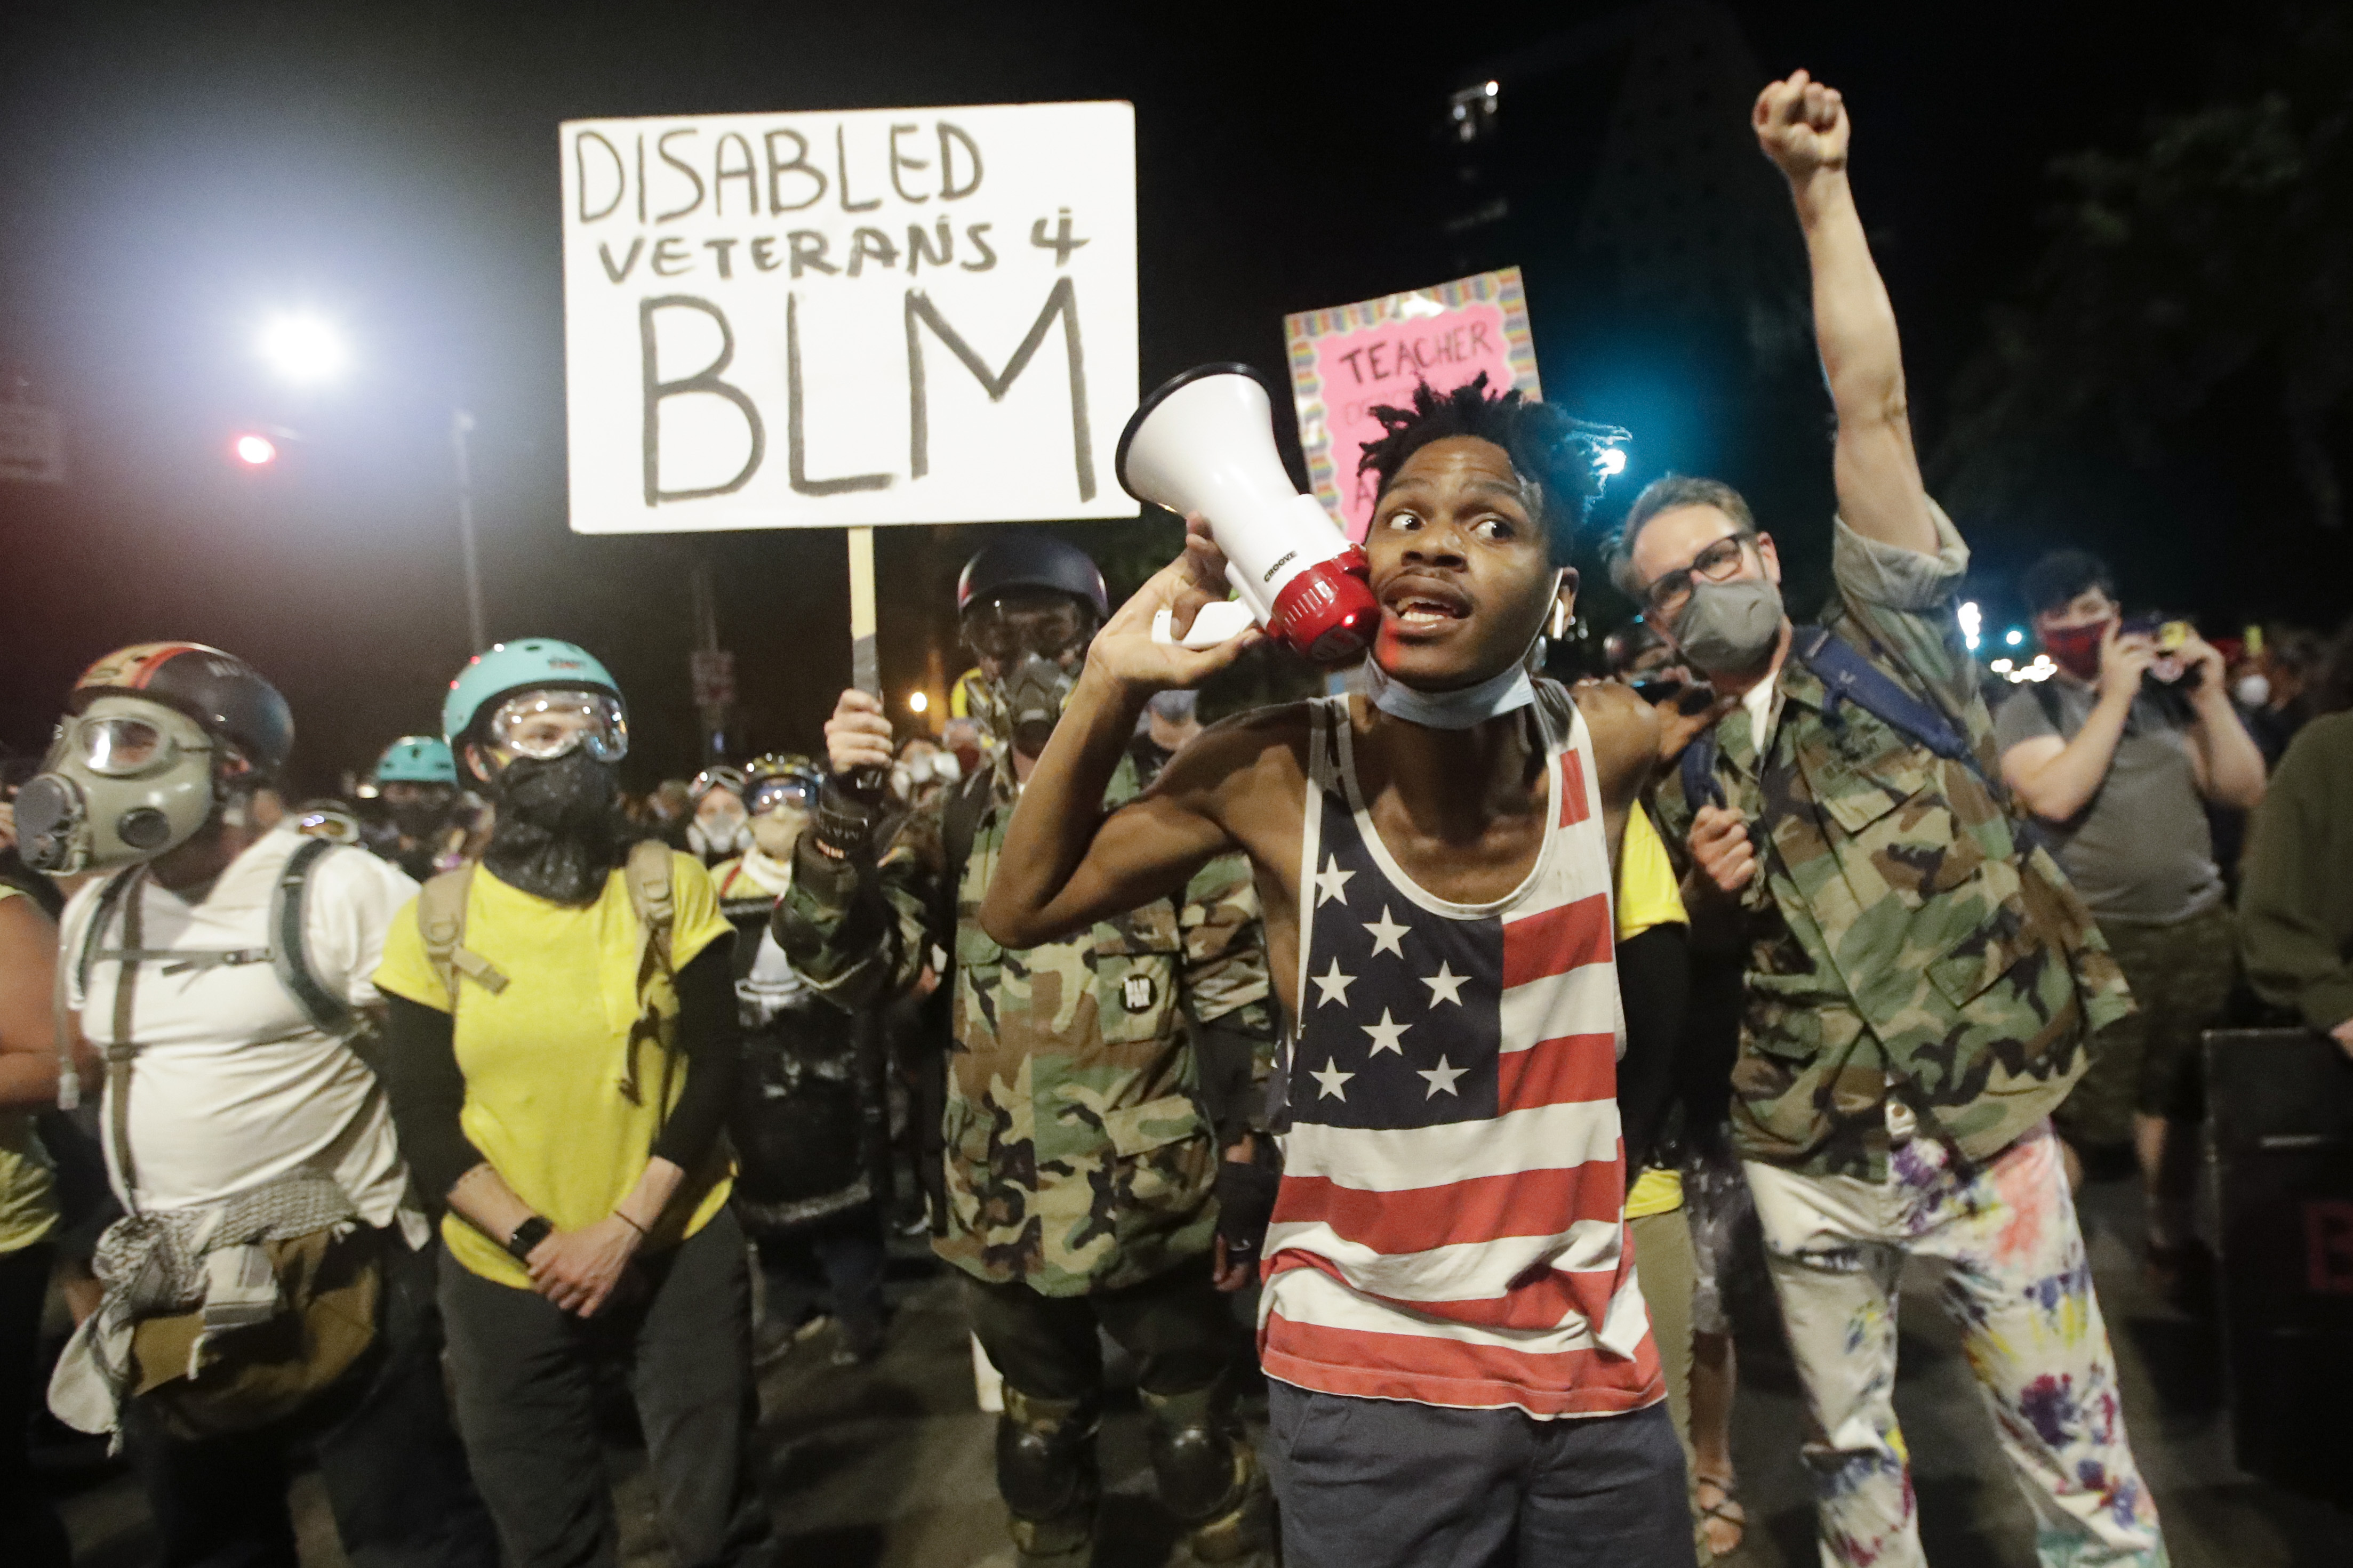 A demonstrator shouts slogans using a bullhorn next to a group of military veterans during a Black Lives Matter protest at the Mark O. Hatfield United States Courthouse Sunday, July 26, 2020, in Portland, Ore. (AP Photo/Marcio Jose Sanchez)